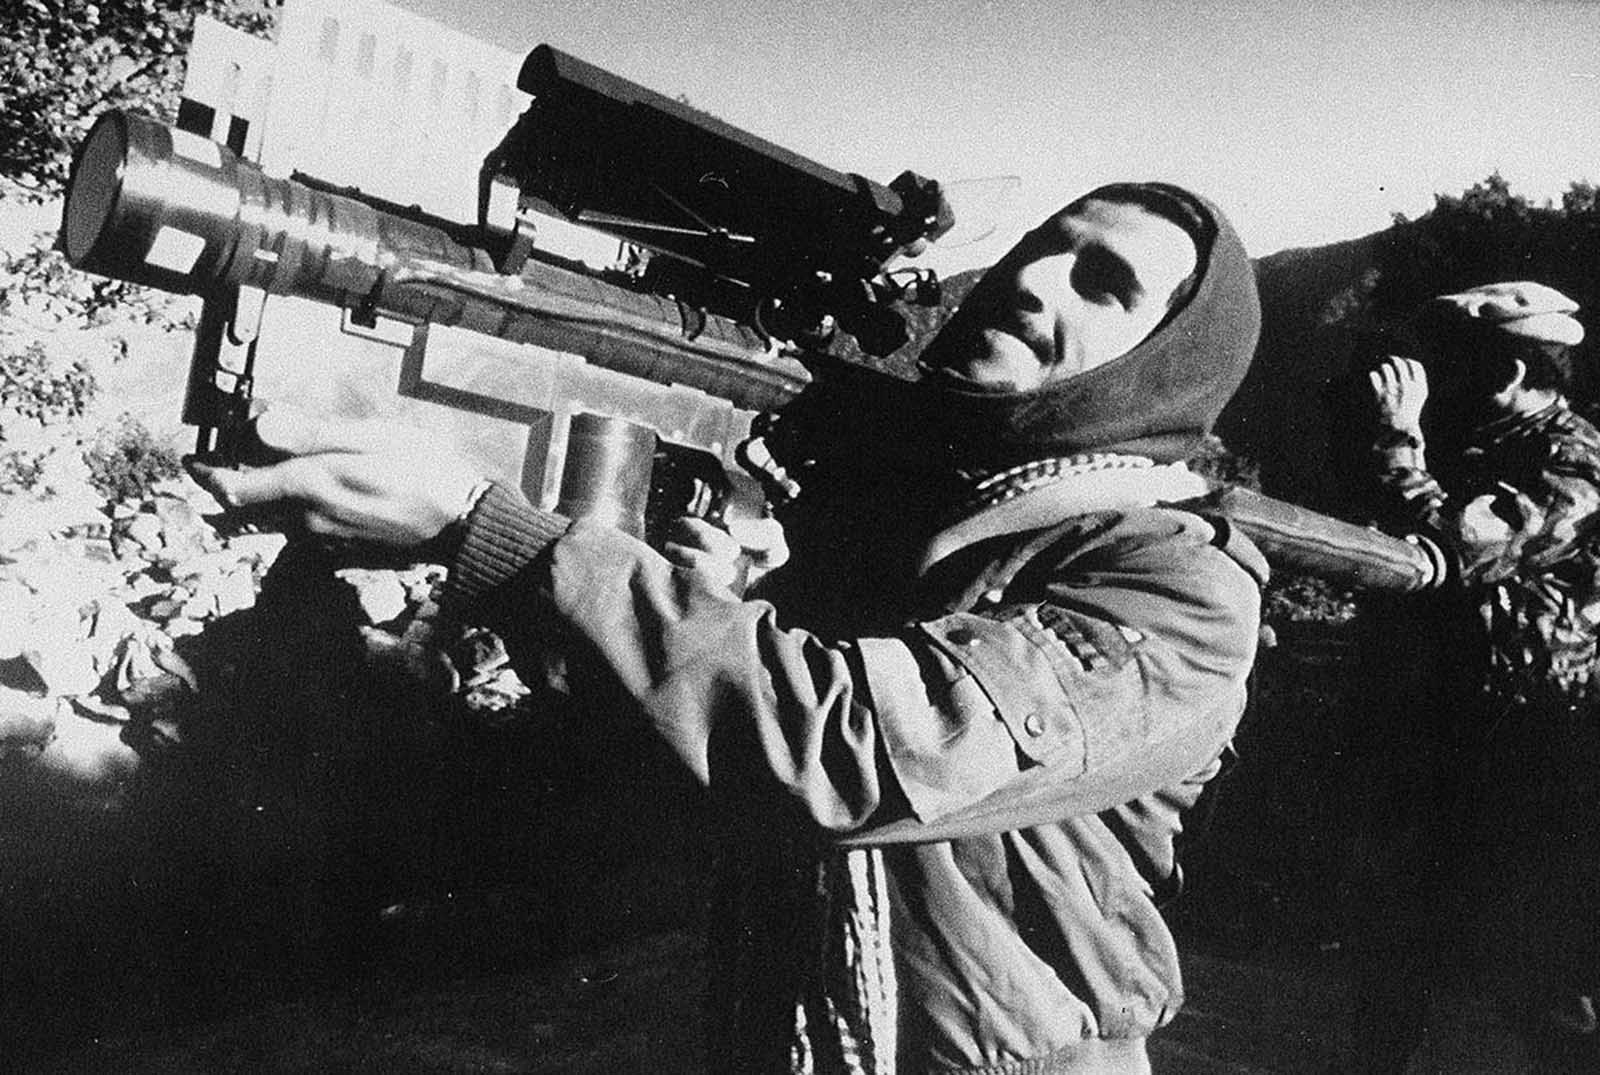 An Afghan guerrilla handles a U.S.-made Stinger anti-aircraft missile in this photo made between November 1987 and January 1988. The shoulder-fired, heat-seeking missile supplied to the Afghan resistance by the CIA during the Soviet invasion of Afghanistan, is capable of bringing down low-flying planes and helicopters. At one point, late in the war, rebels were reportedly downing nearly one Soviet aircraft every day with Stinger missiles.